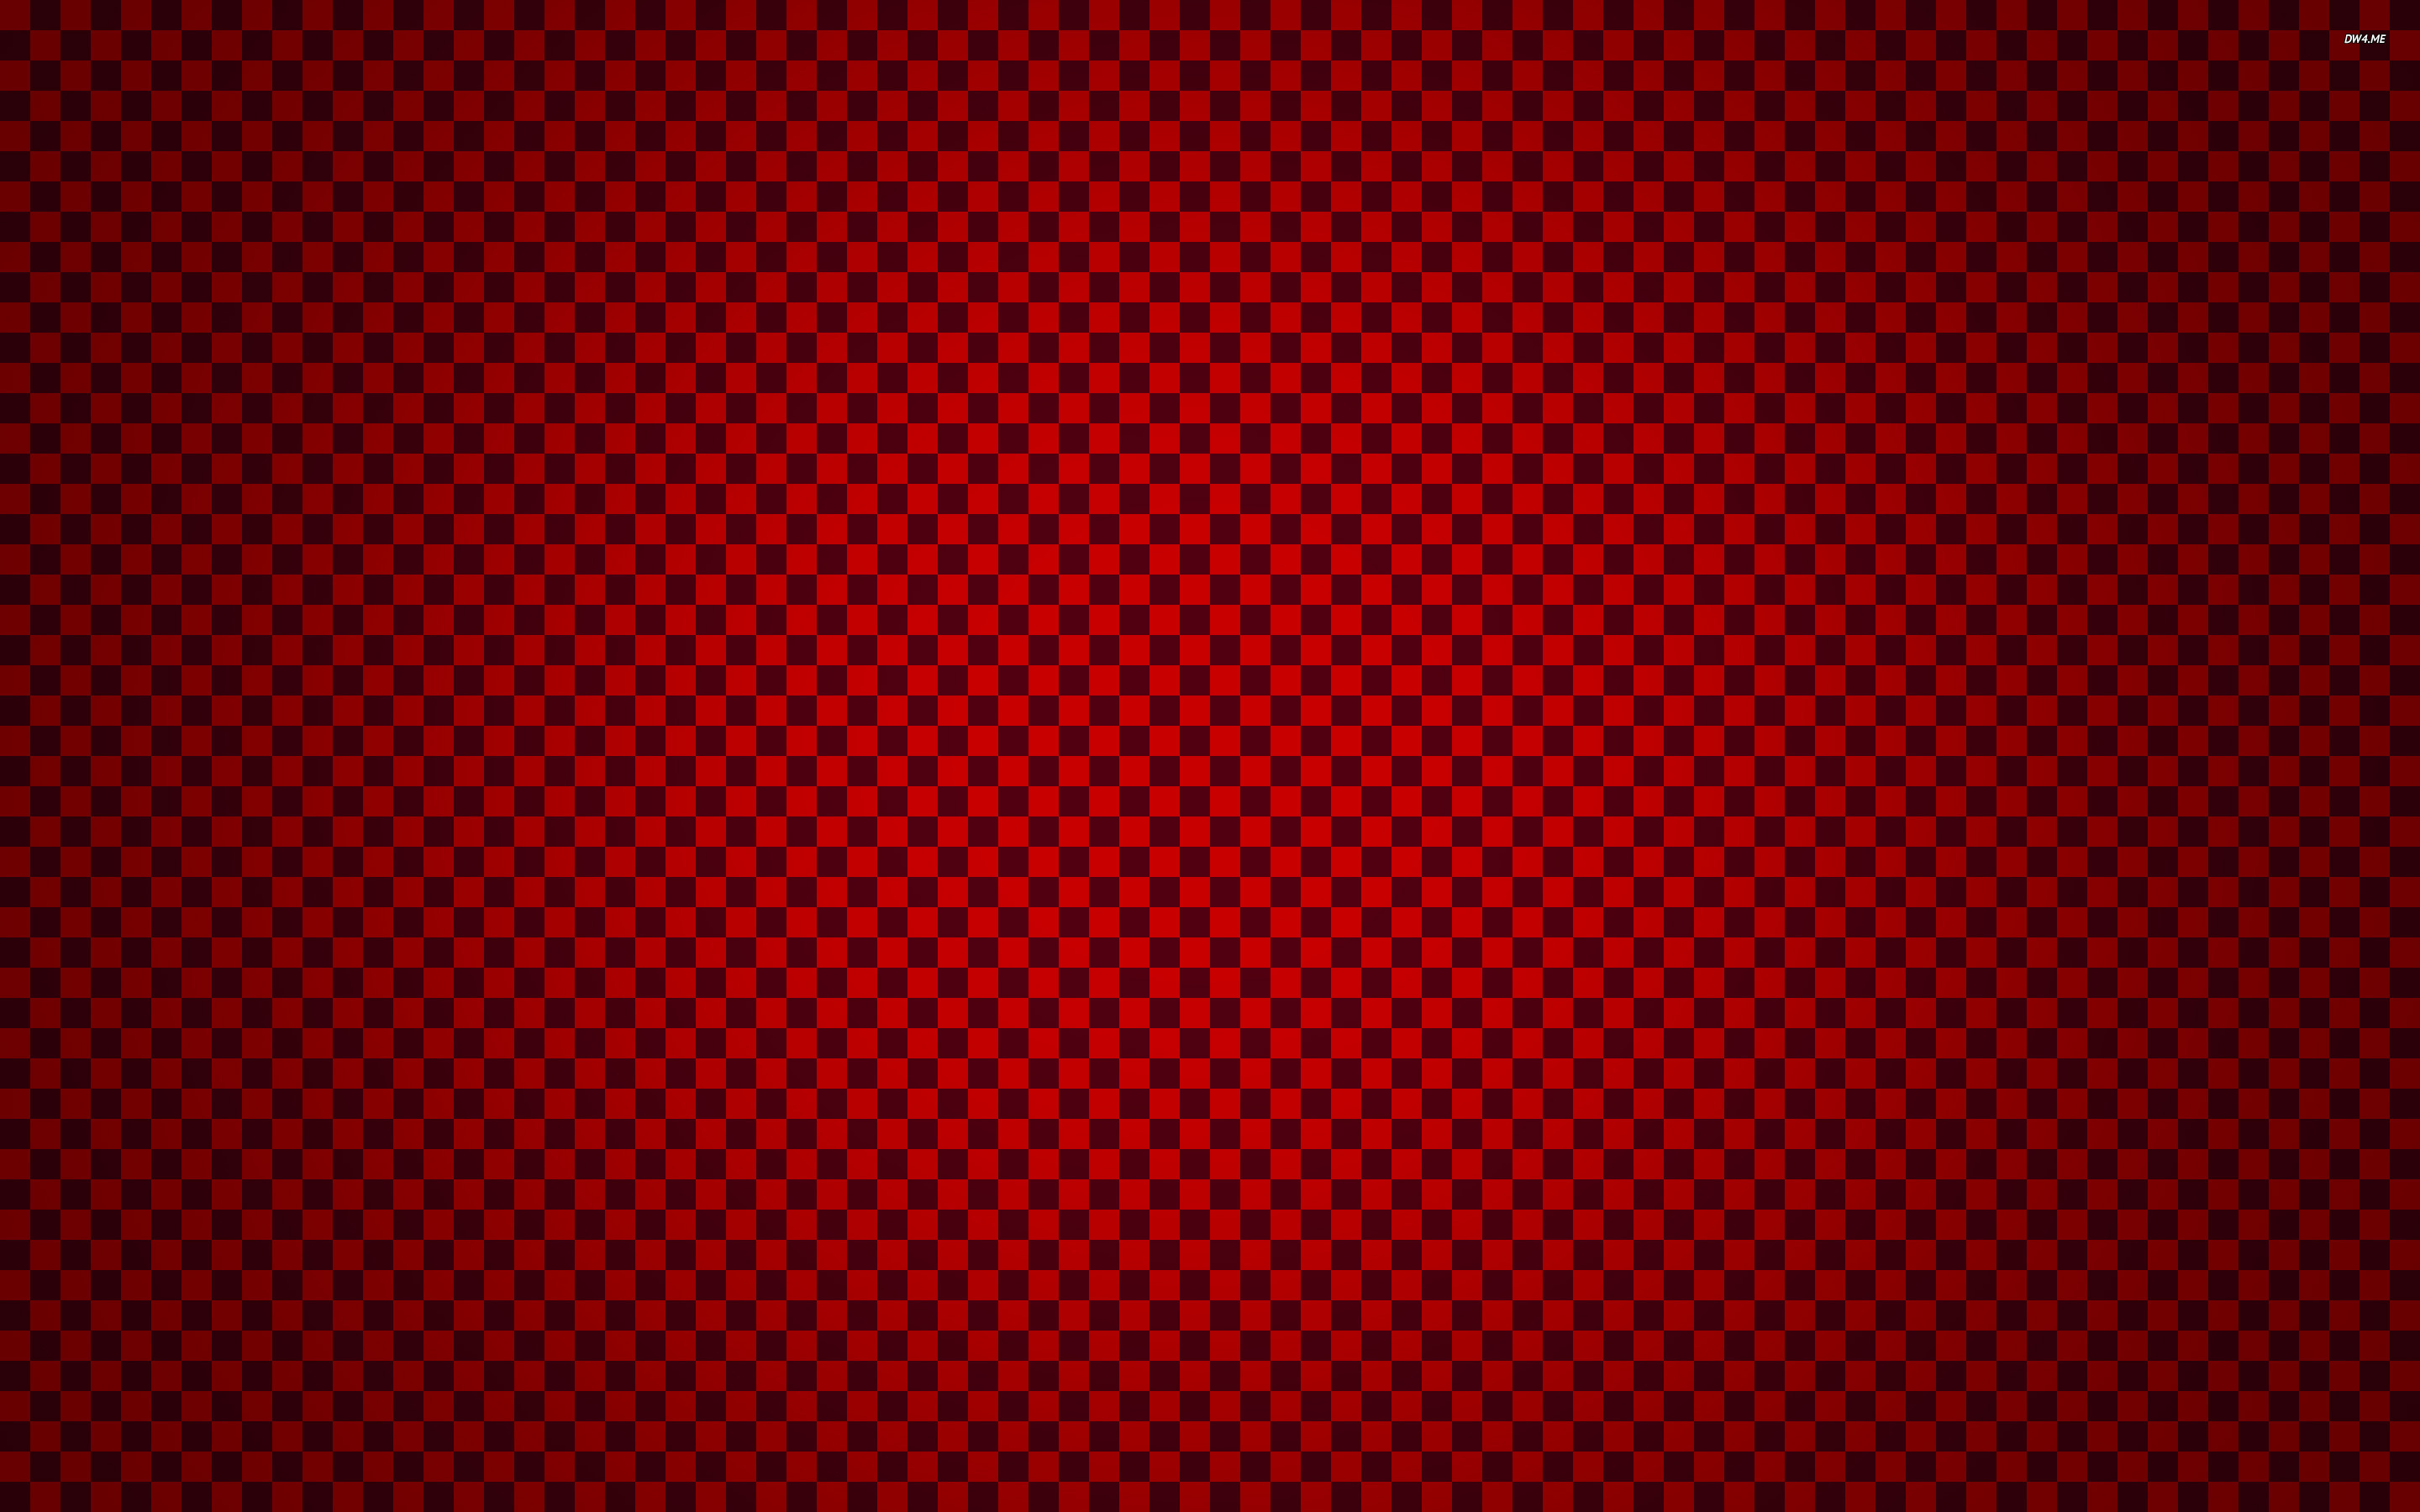 Related Pictures checkered flag wallpaper border 2880x1800